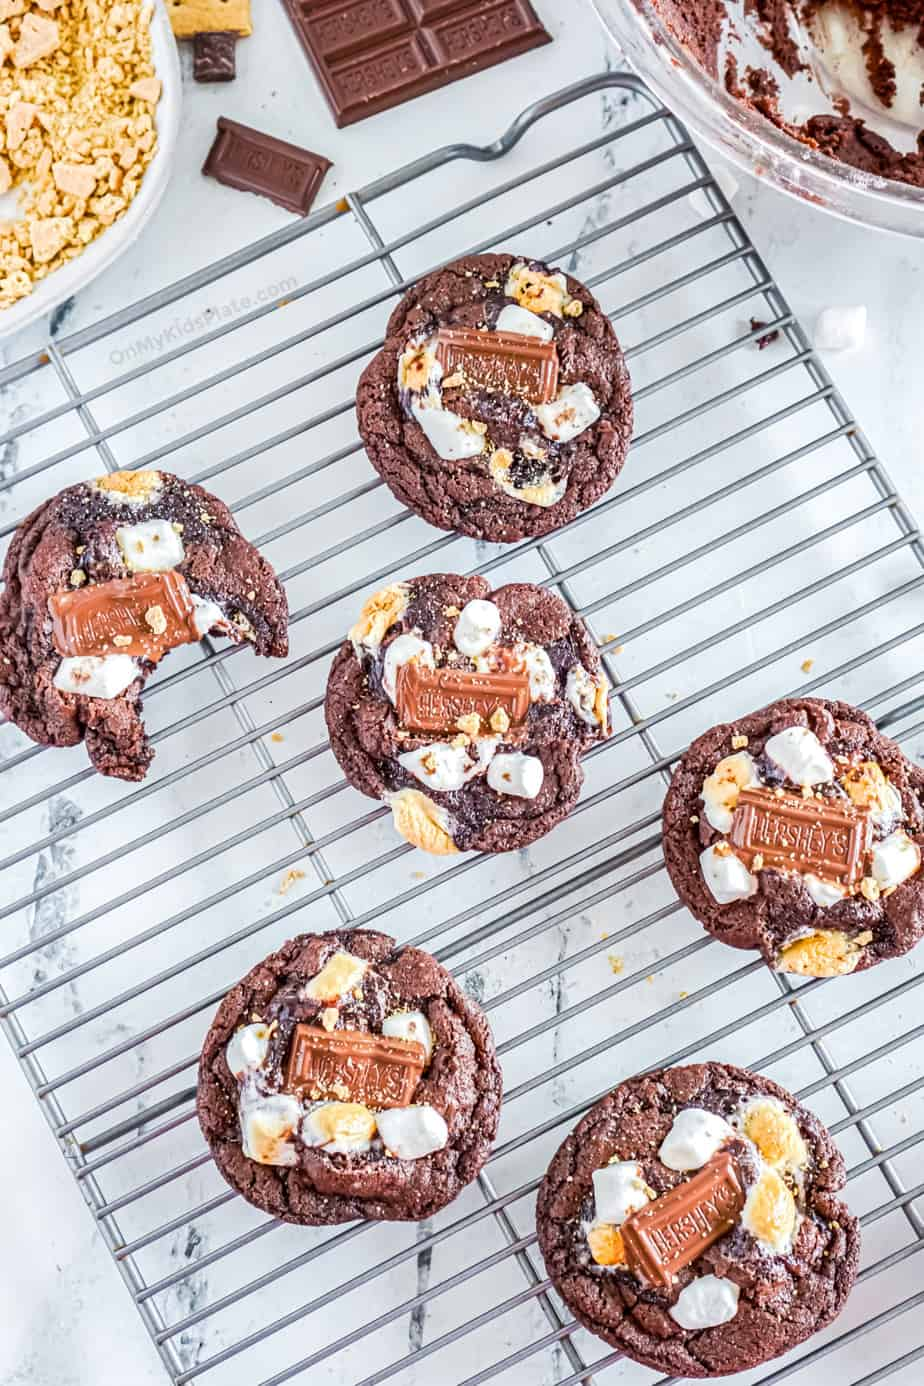 Chocolate S'mores cookies cooling on a rack, one has a bite missing.